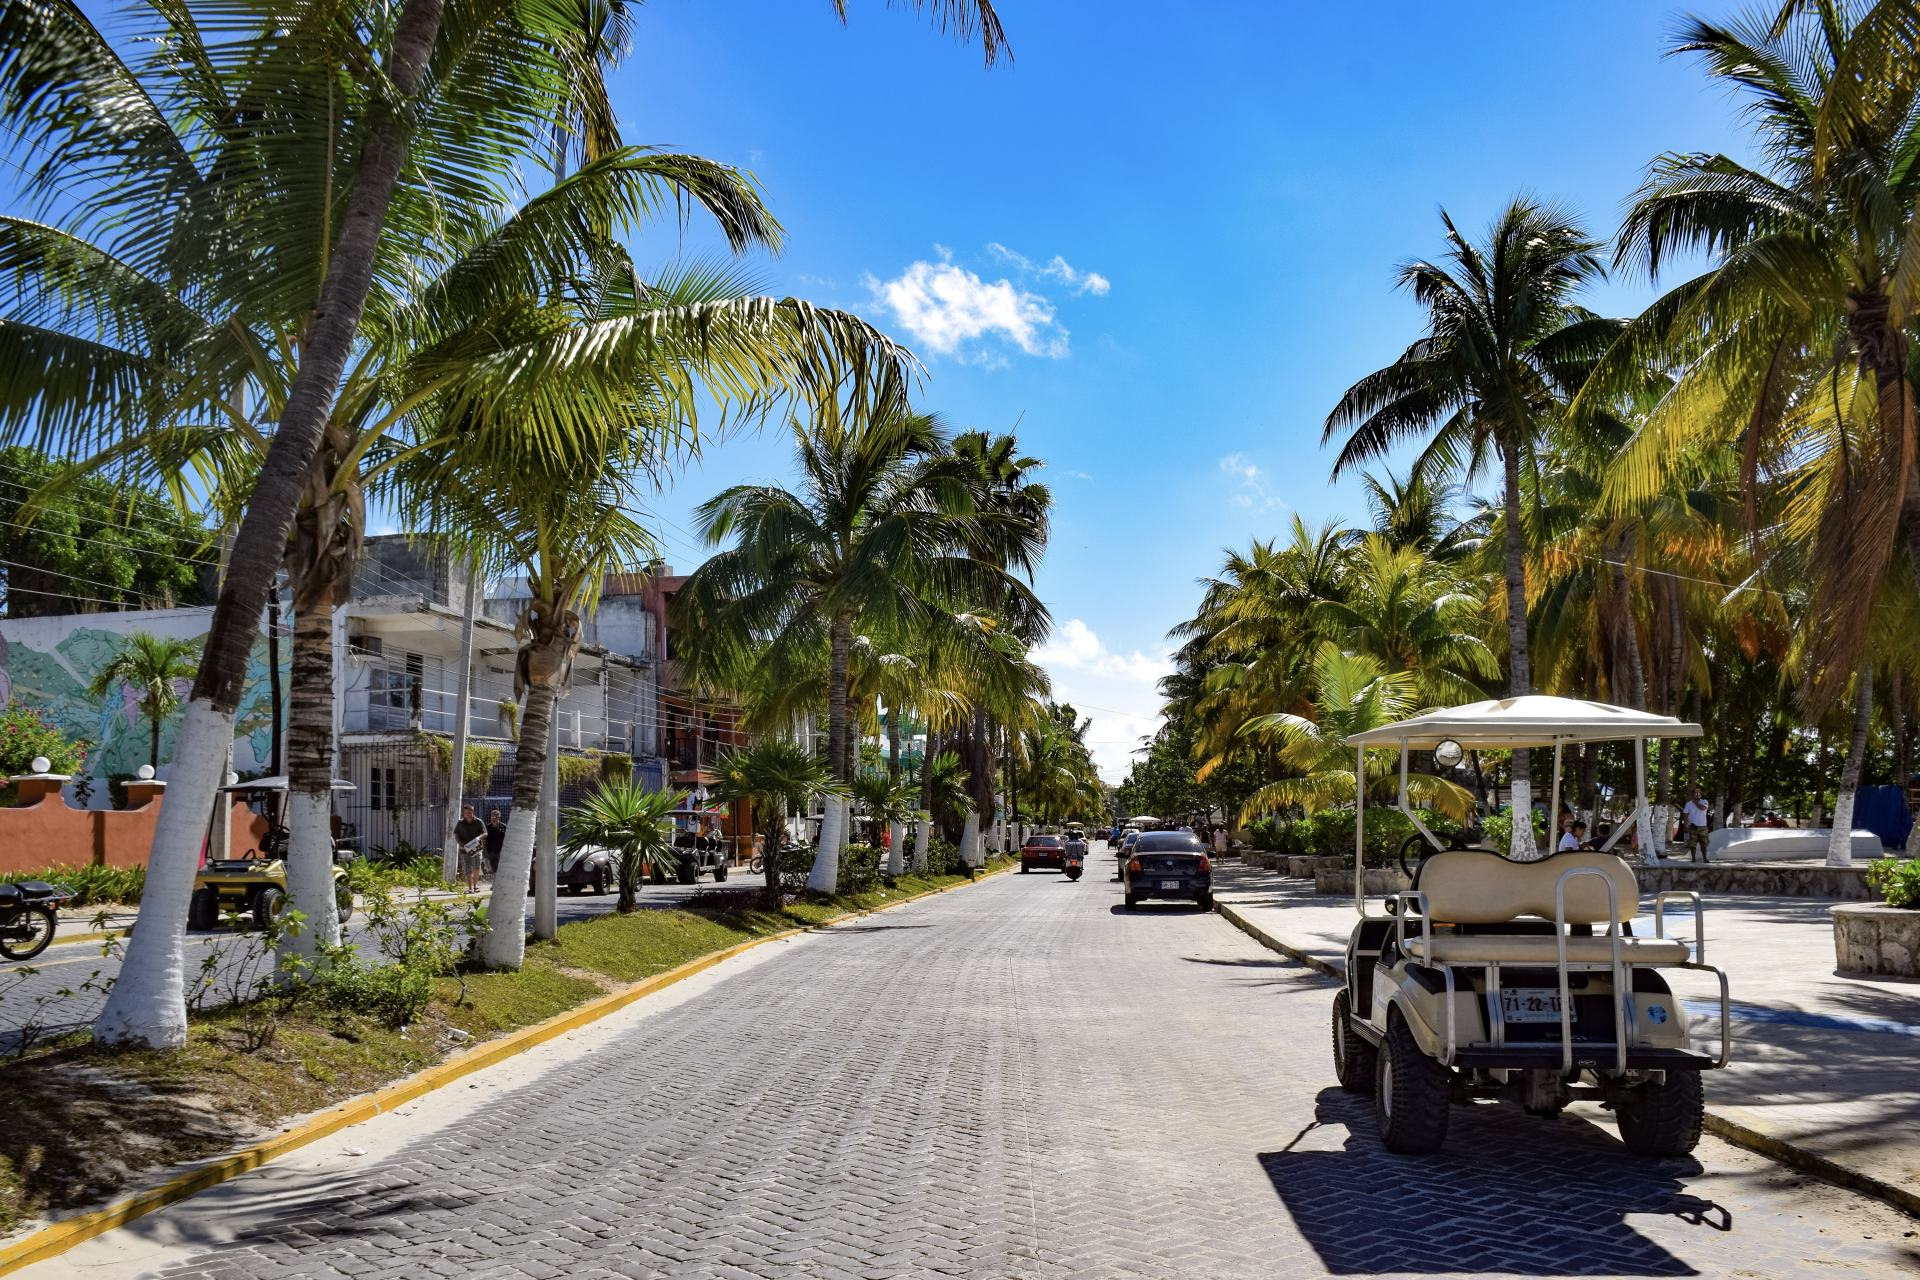 renting a golf cart in isla mujeres